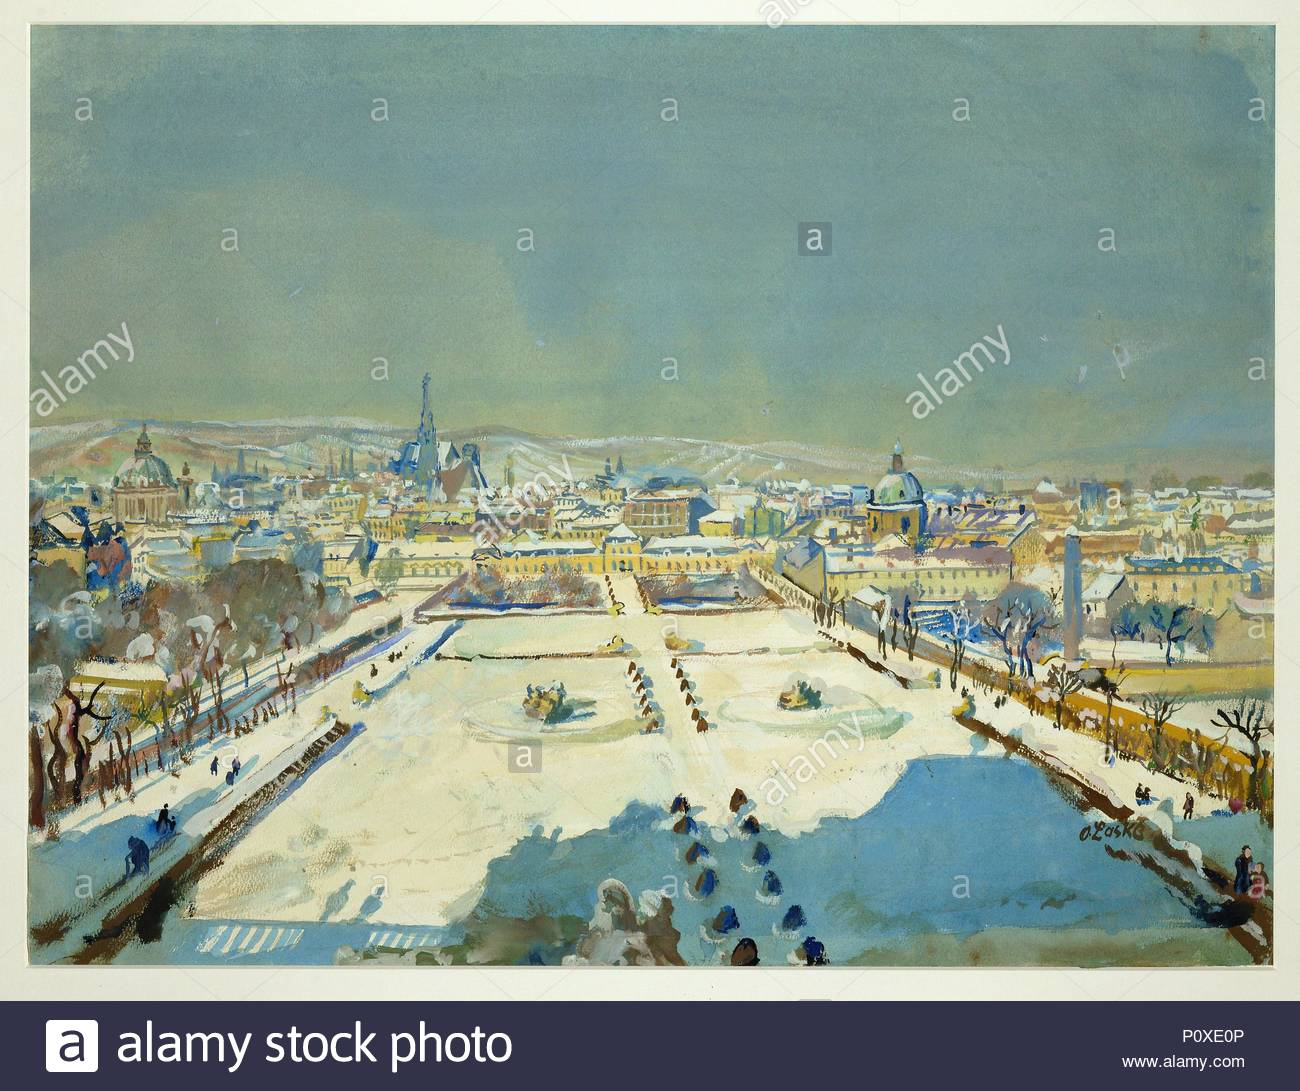 Pool Im Garten Winter Winter Im Belvedere Garten Winter In The Belvedere Gardens 1944